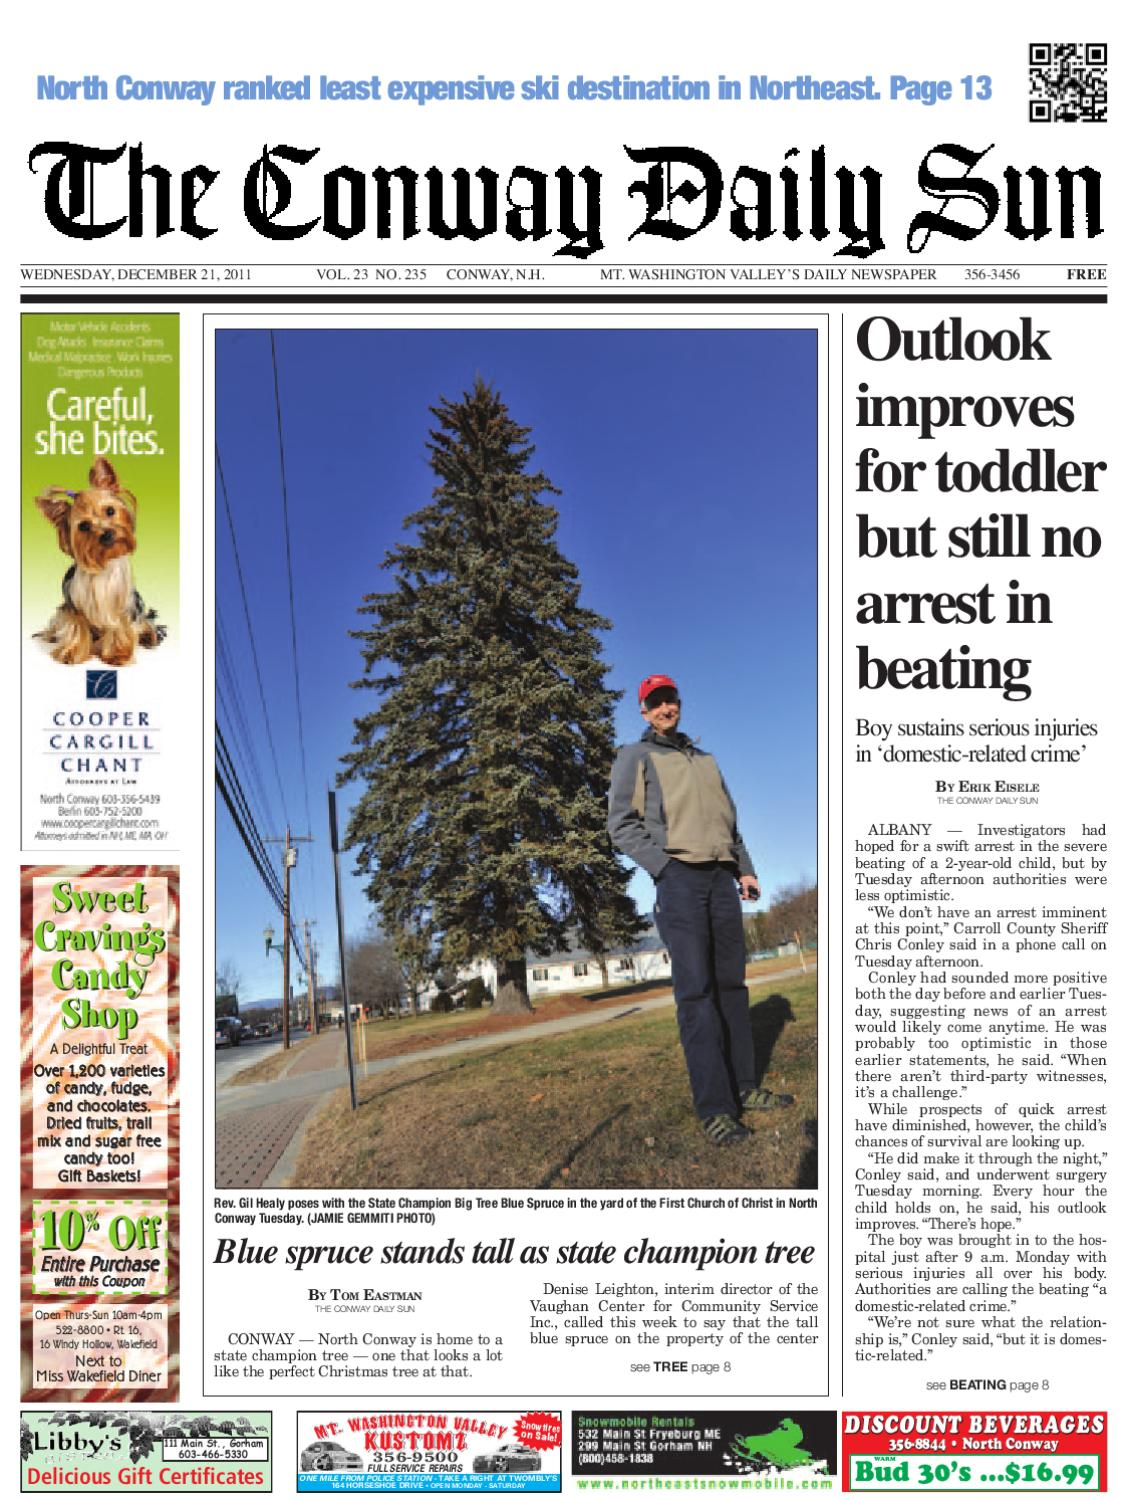 The Conway Daily Sun, Wednesday, December 21, 2011 by Daily